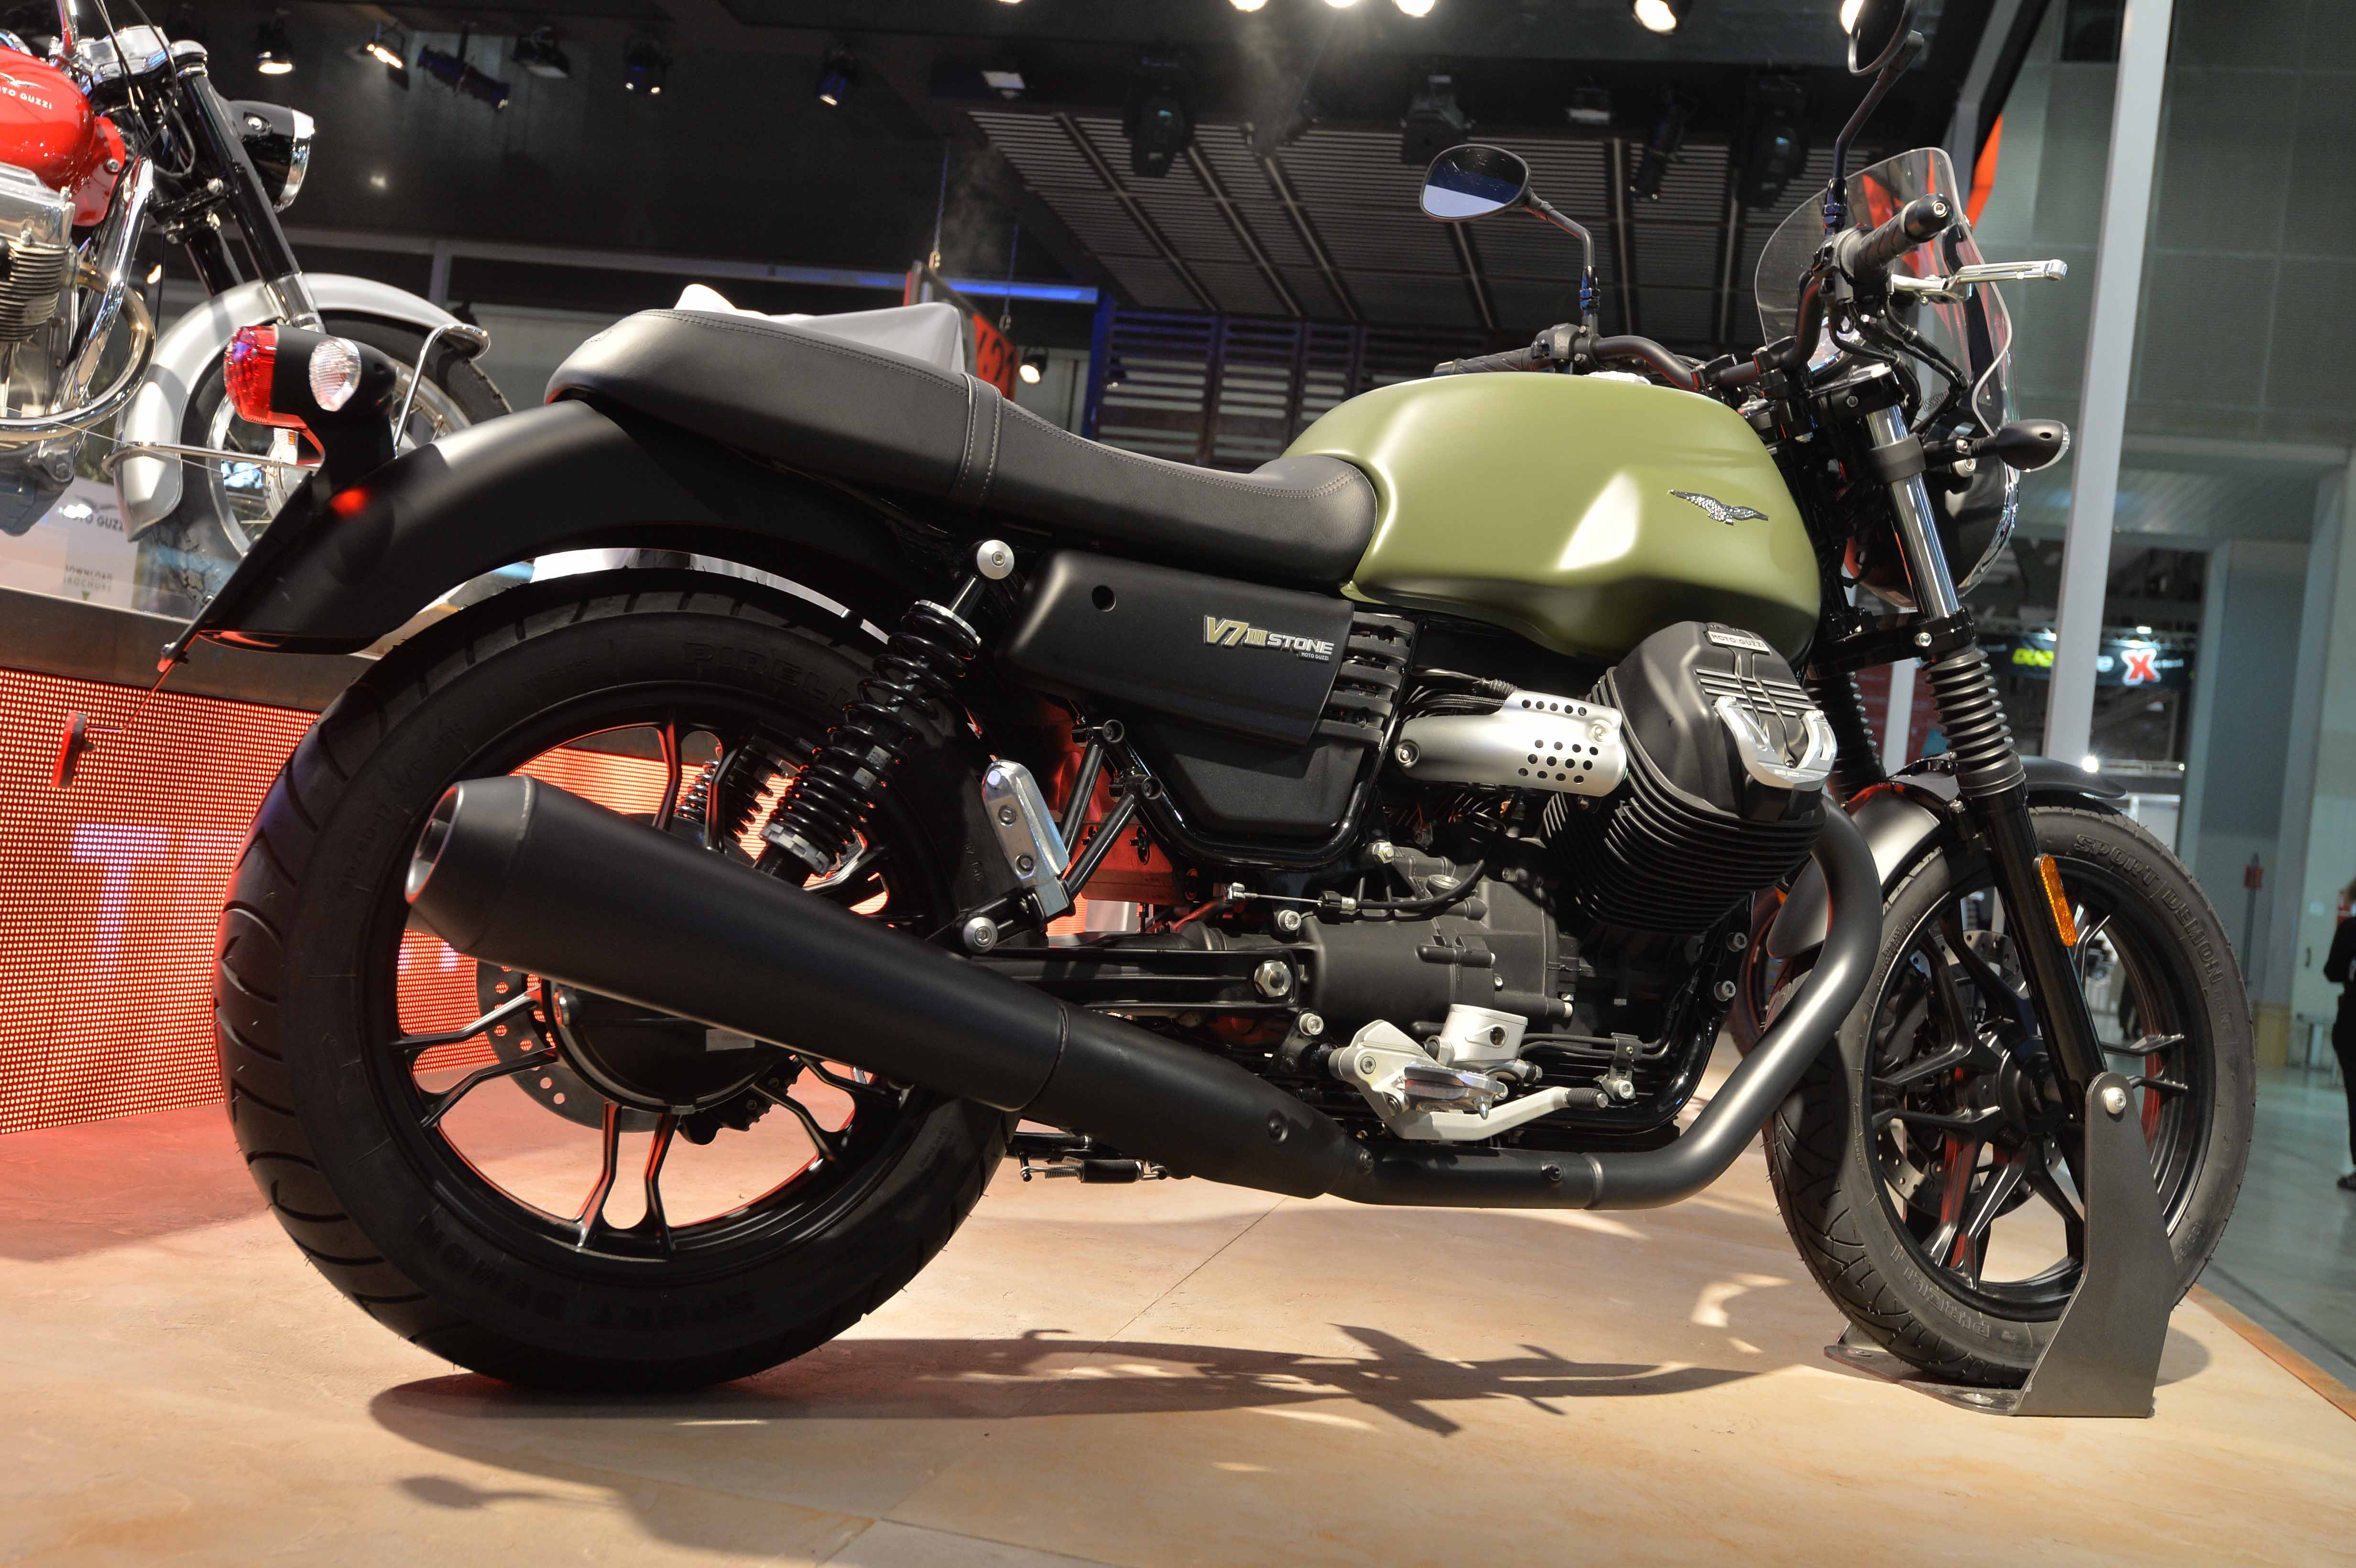 2017 Moto Guzzi V7 III Stone ABS in Brea, California